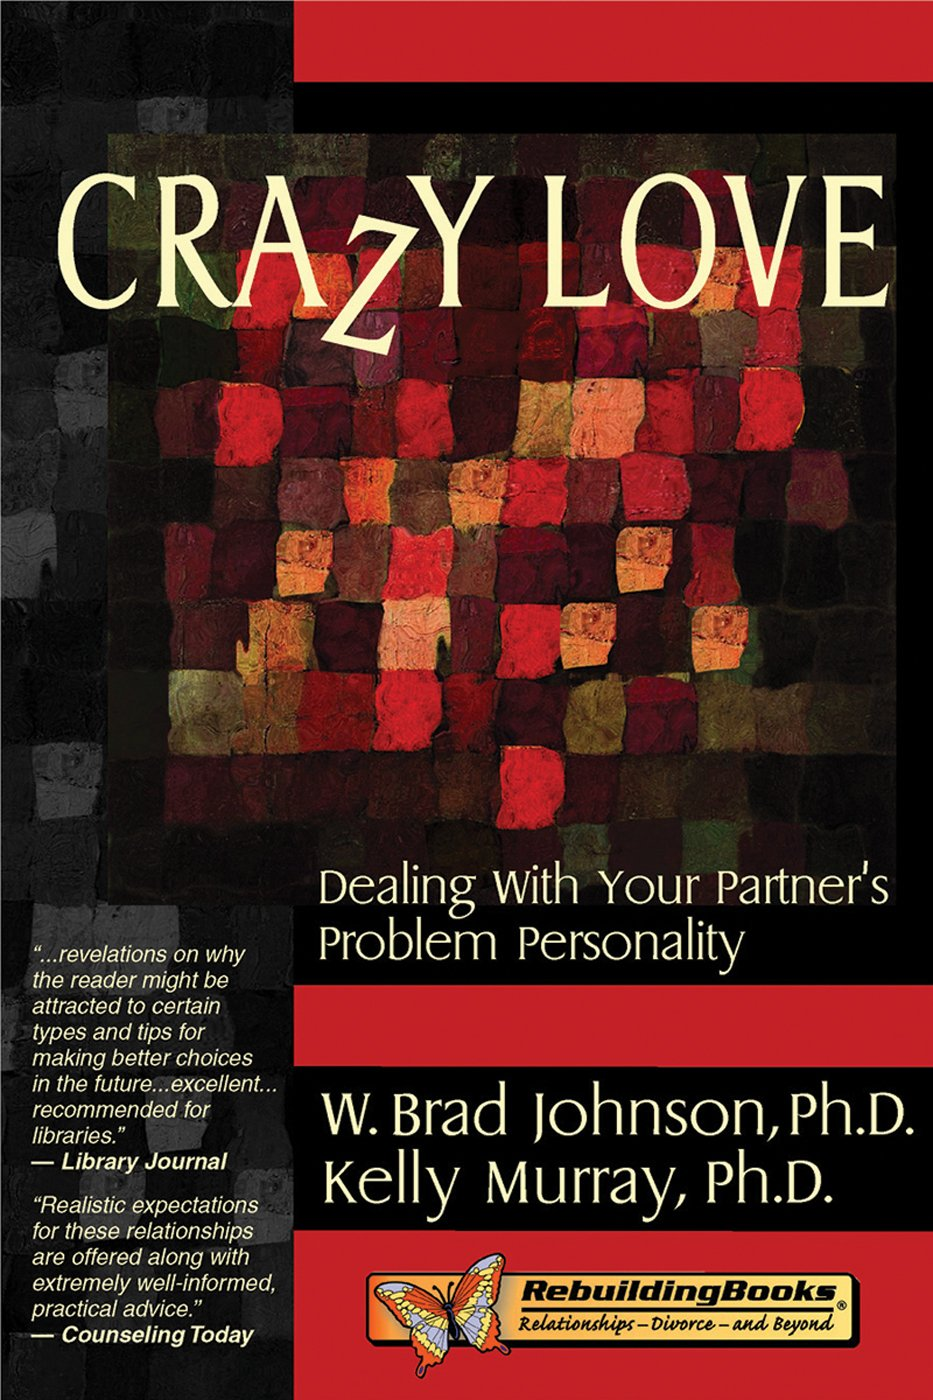 Crazy Love  Dealing With Your Partner's Problem Personality  Rebuilding Books  Relationships Divorce And Beyond